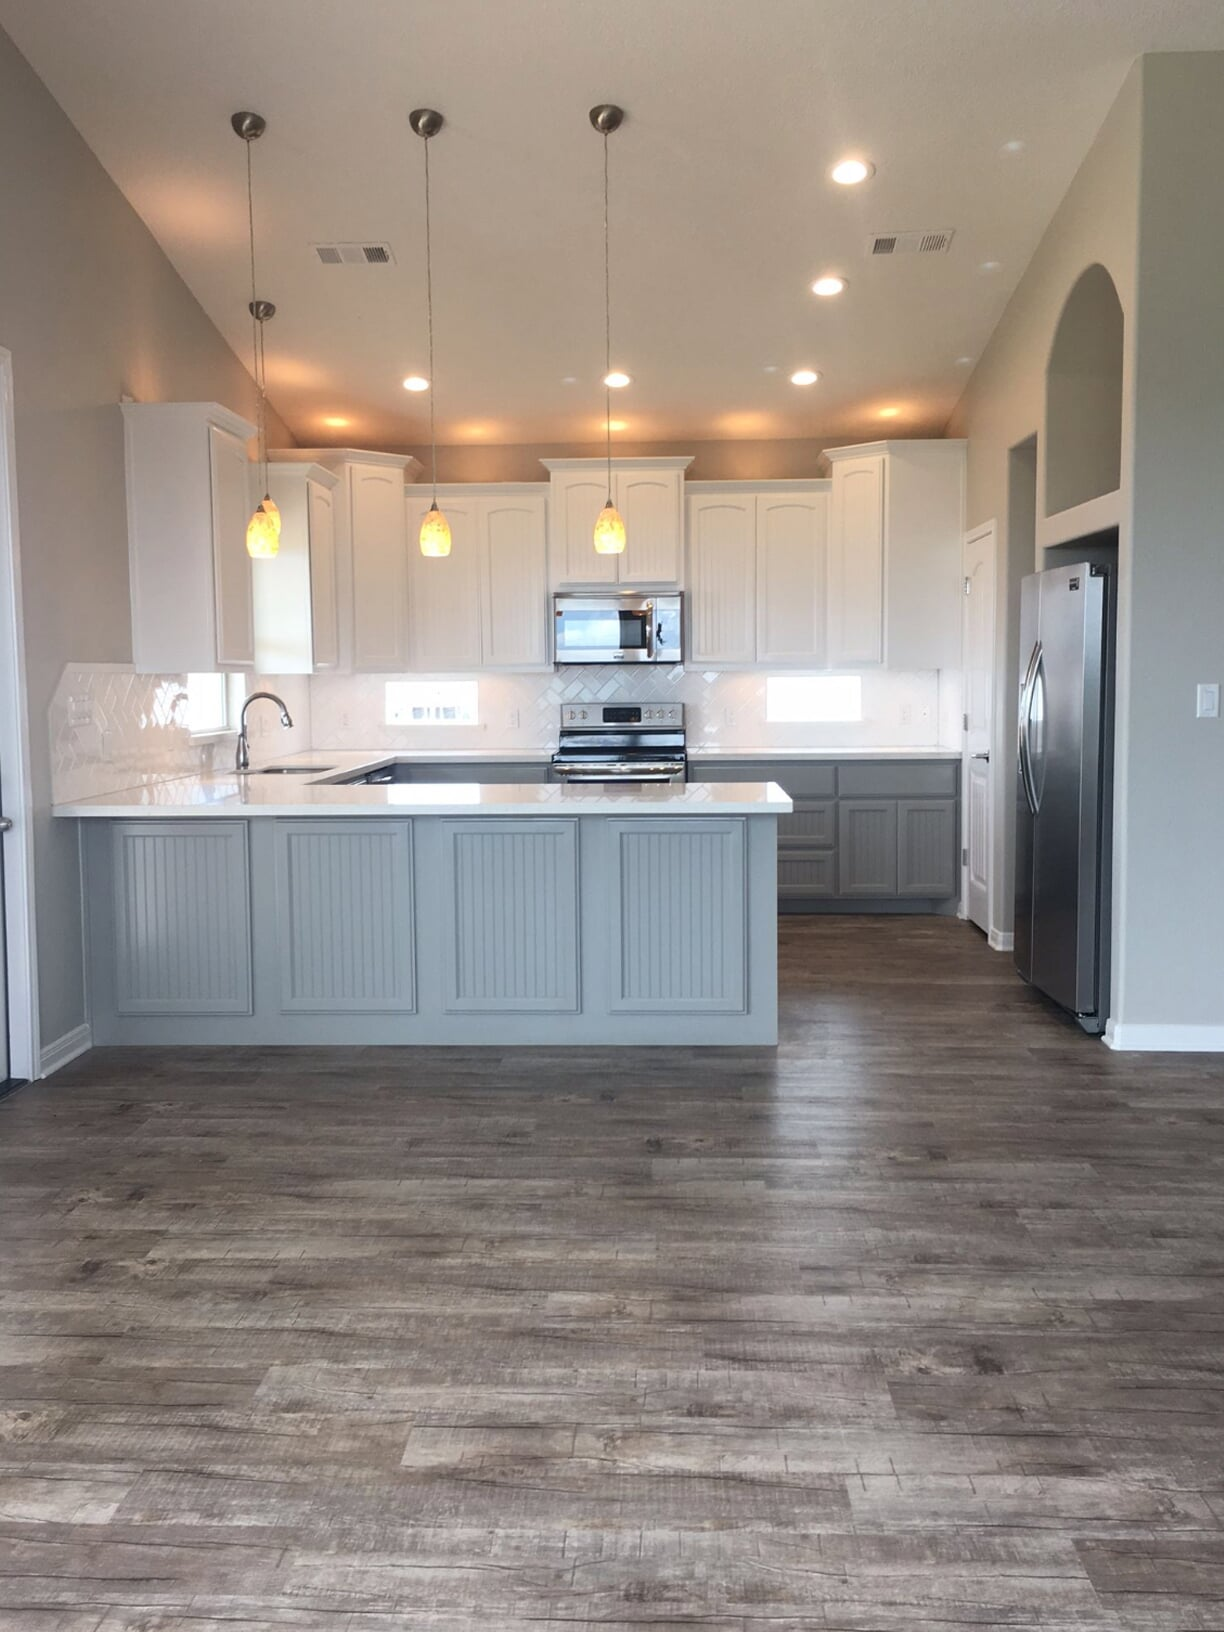 Bright and modern kitchen design in Baytown, TX from Baytown Floors